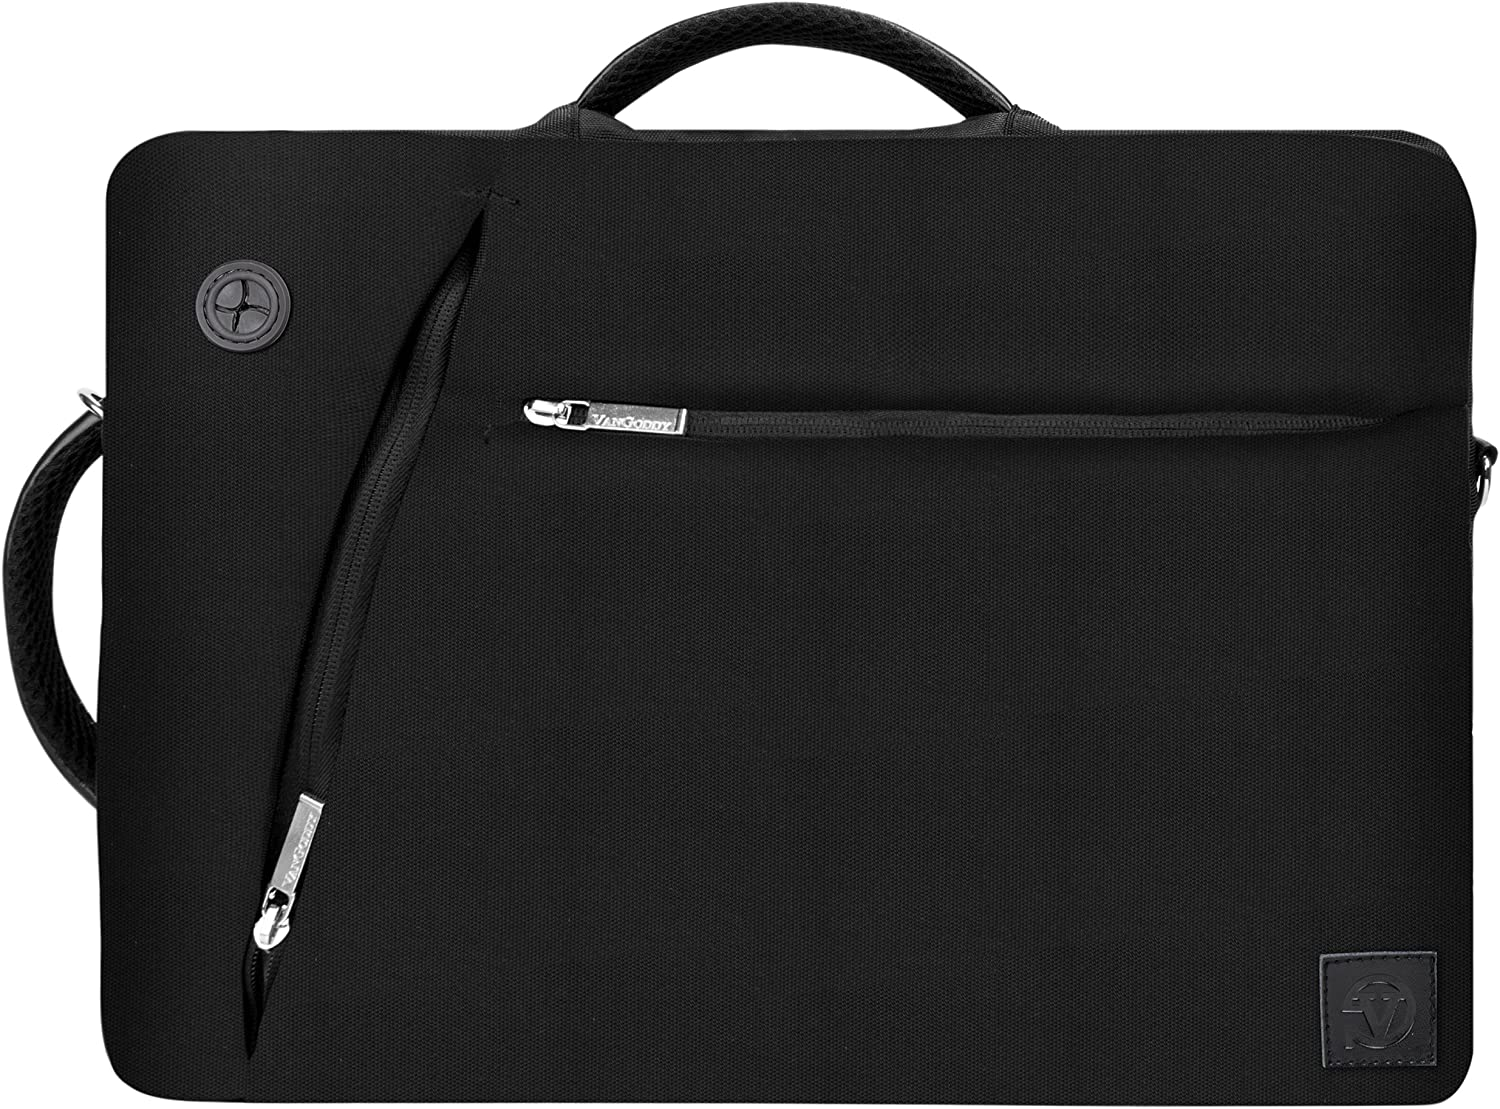 Laptop Bag for Dell XPS 13, Latitude 3190, Latitude 11, 12, 12.25in Laptops